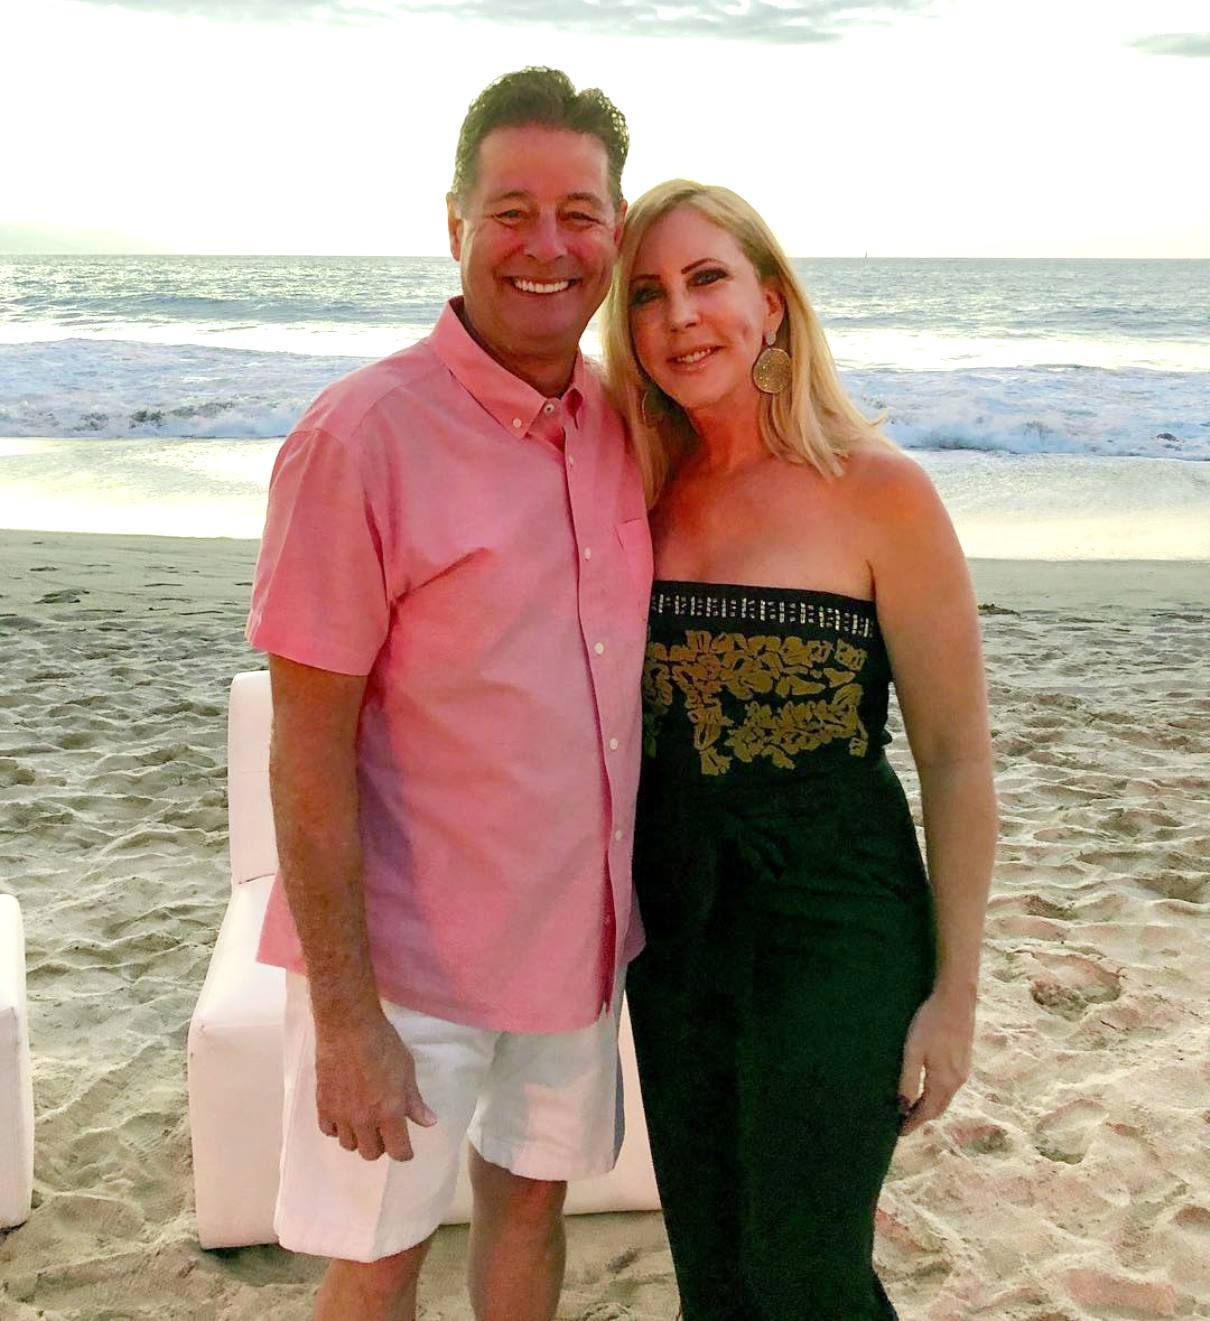 RHOC's Vicki Gunvalson and boyfriend Steve Lodge Wedding Plans